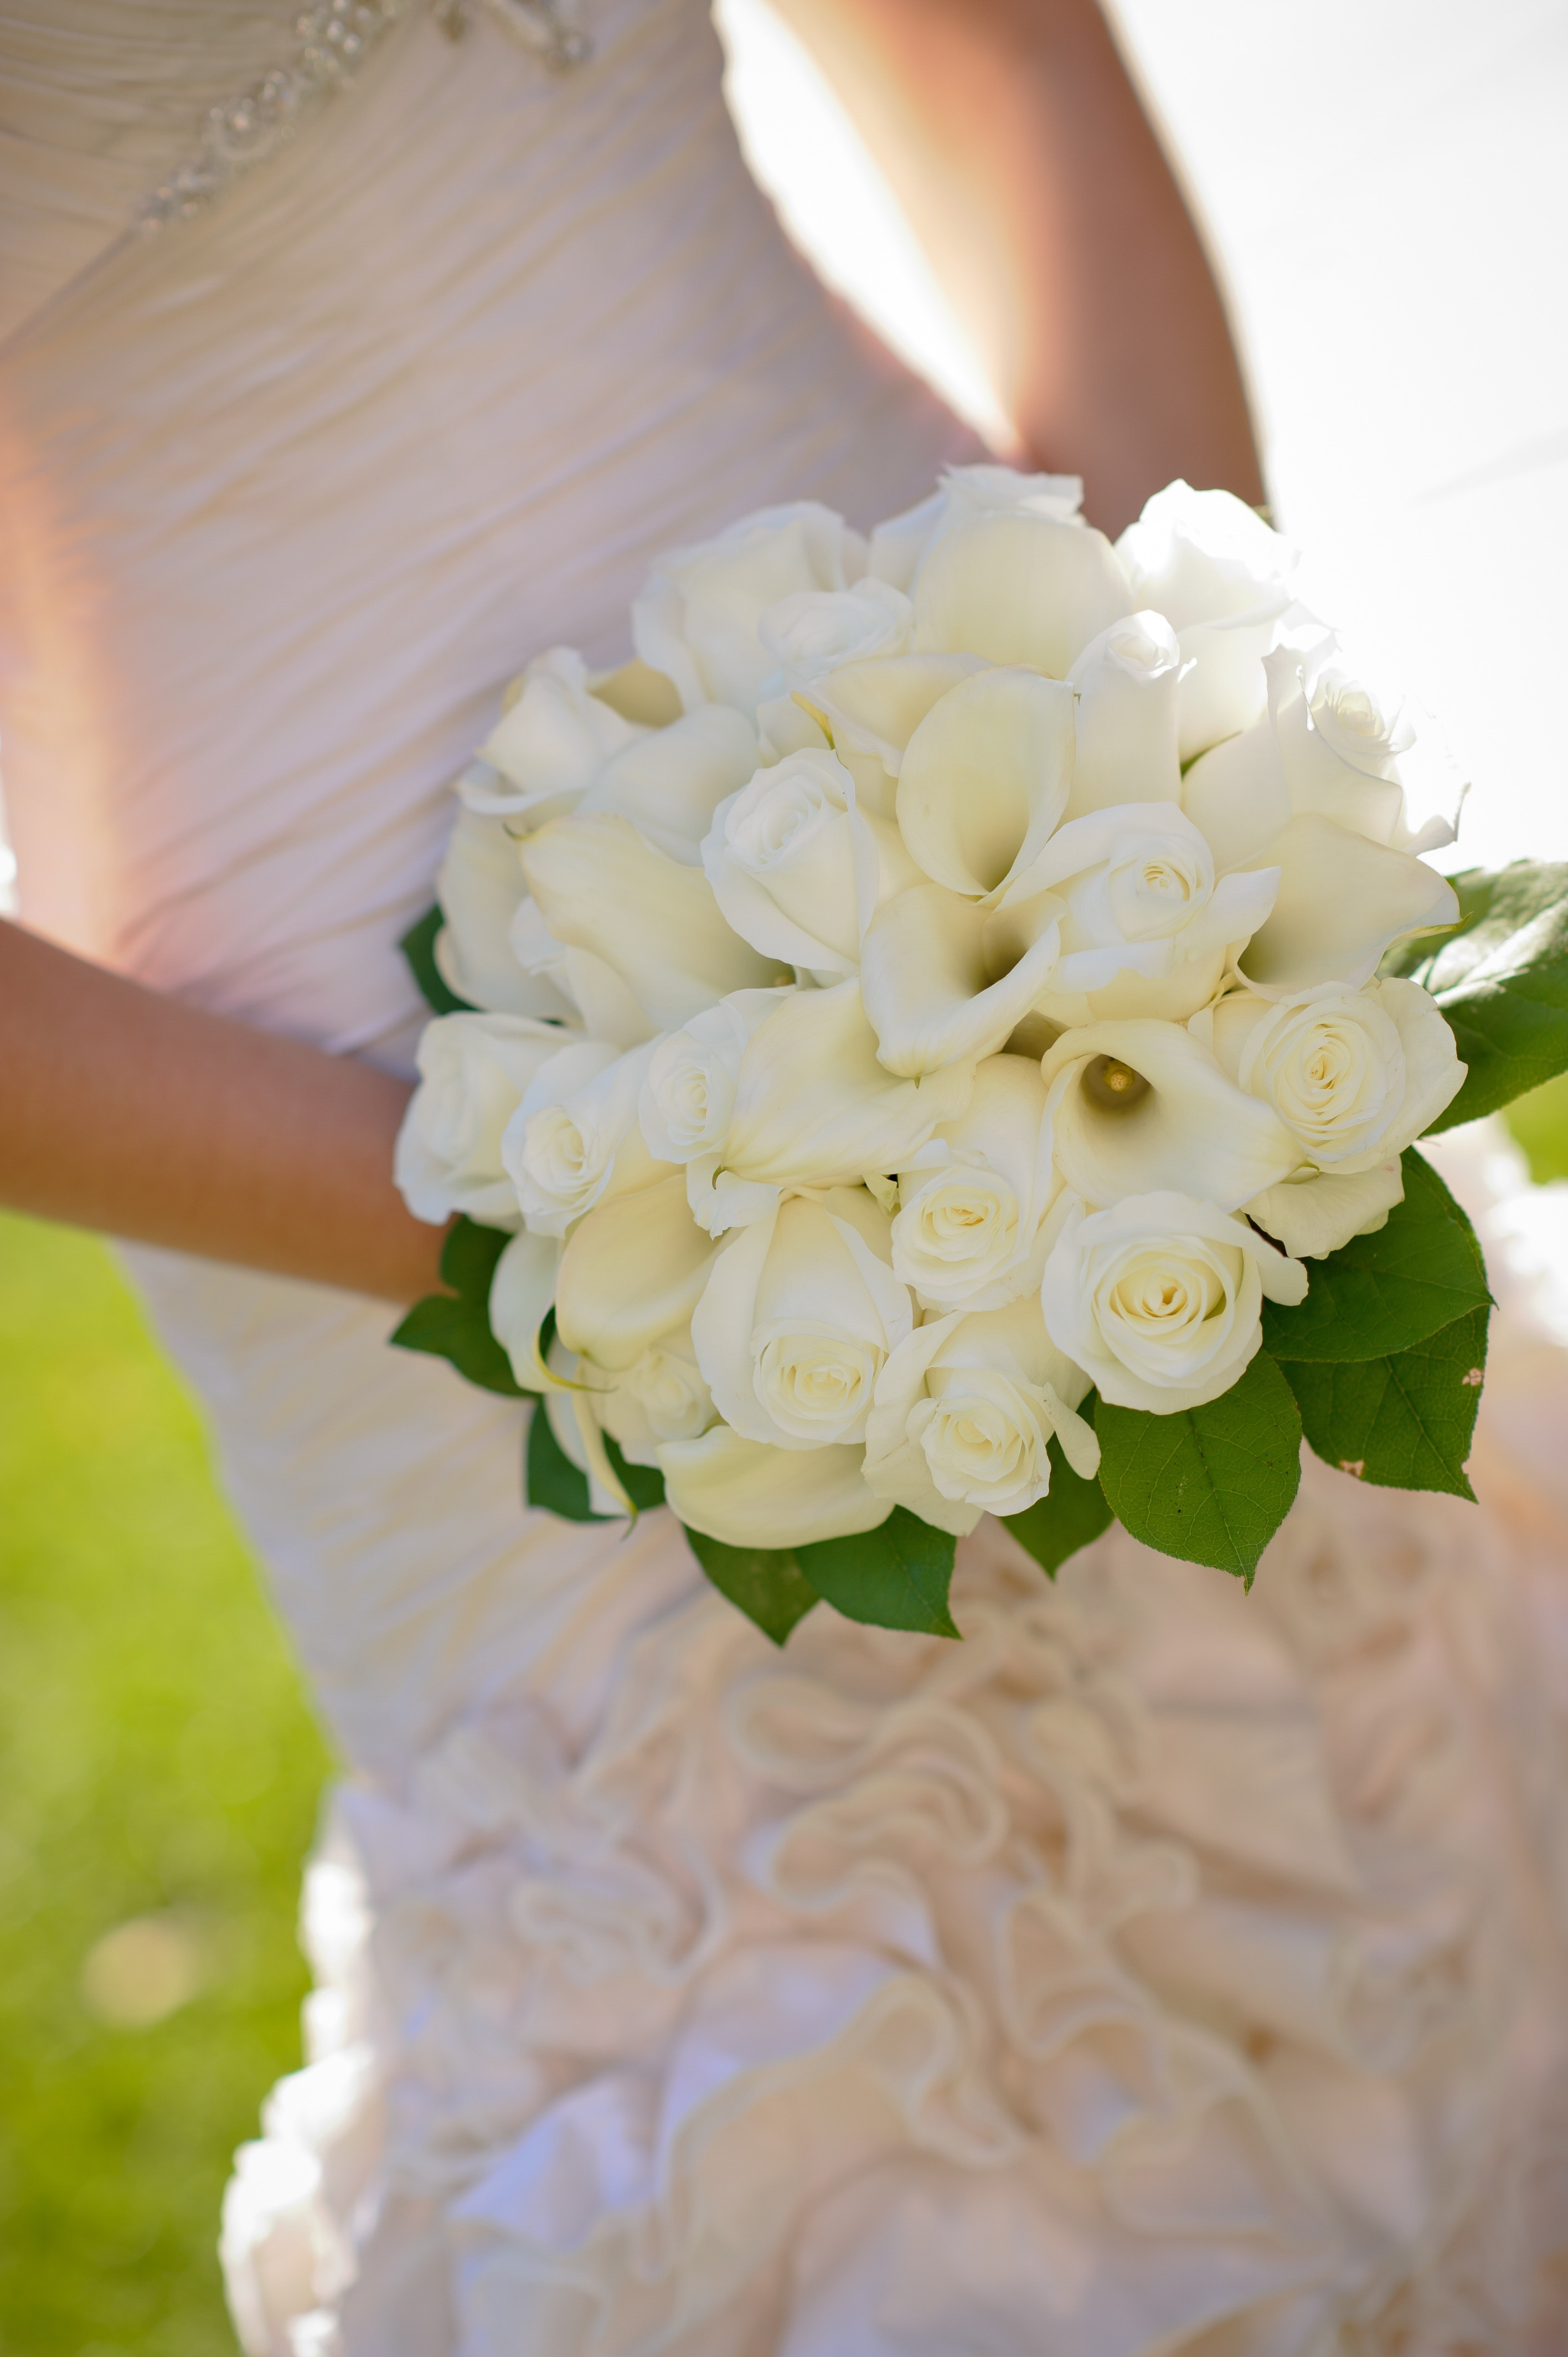 Woman in Wedding Dress Holding White Flower Bouquet · Free Stock Photo